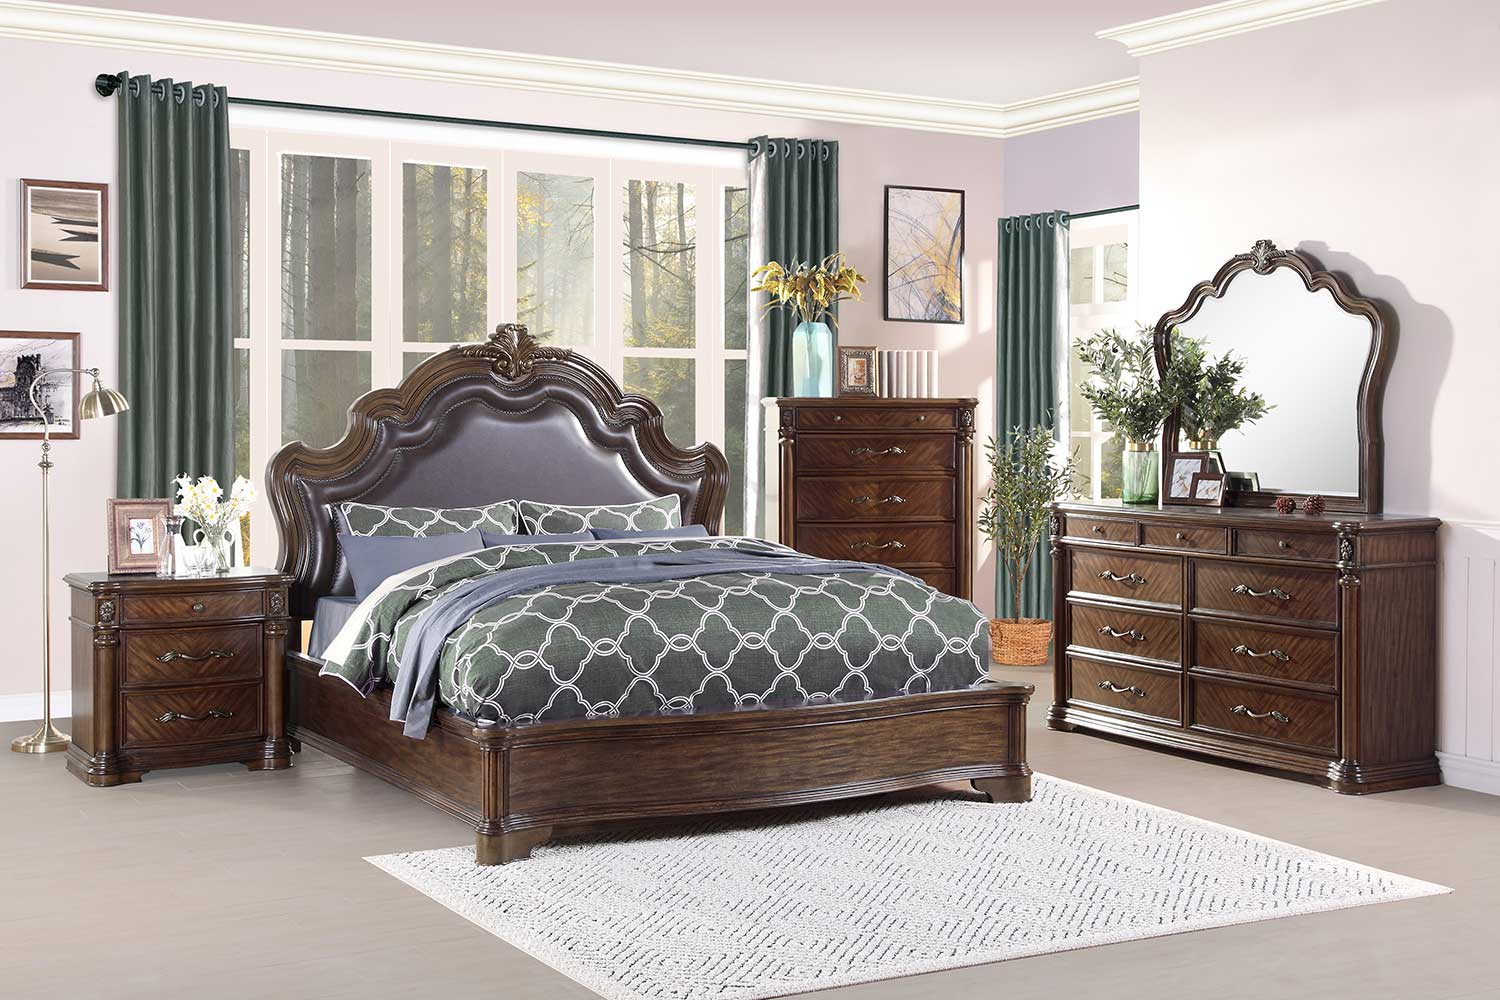 Homelegance Barbary Bedroom Set - Traditional Cherry